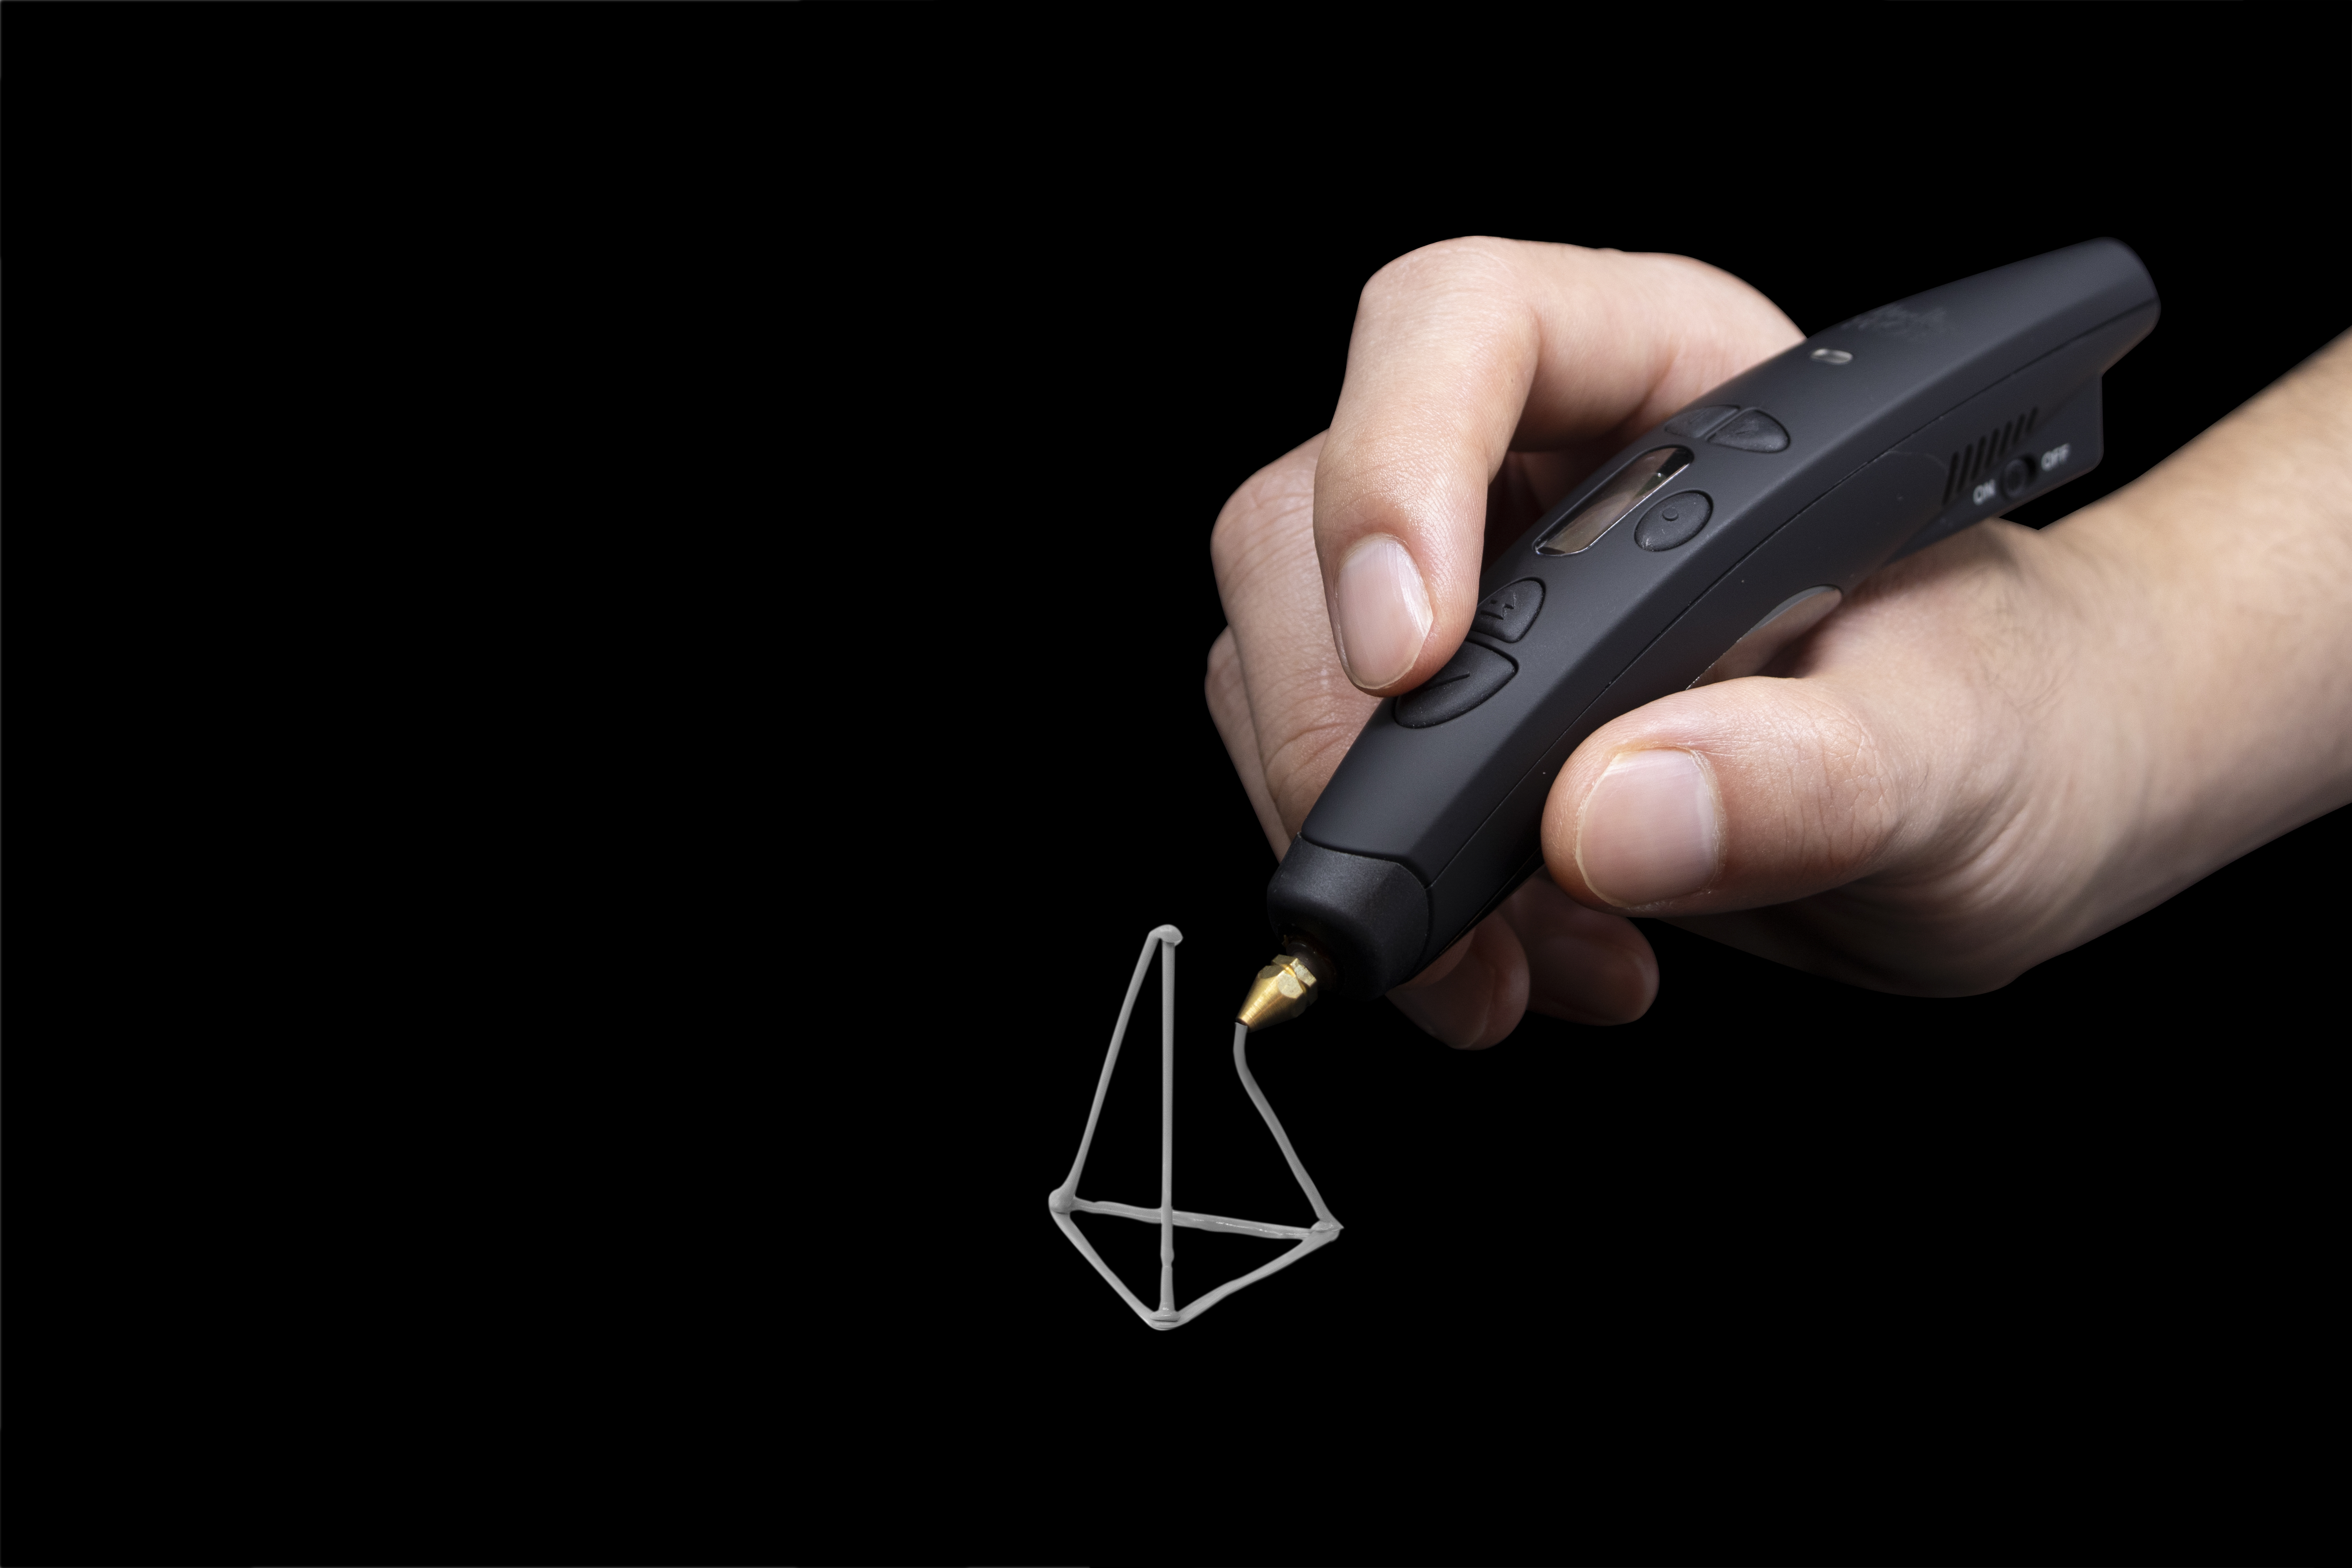 The 3Doodler Pro+ can print in metal, wood and nylon as well as plastics